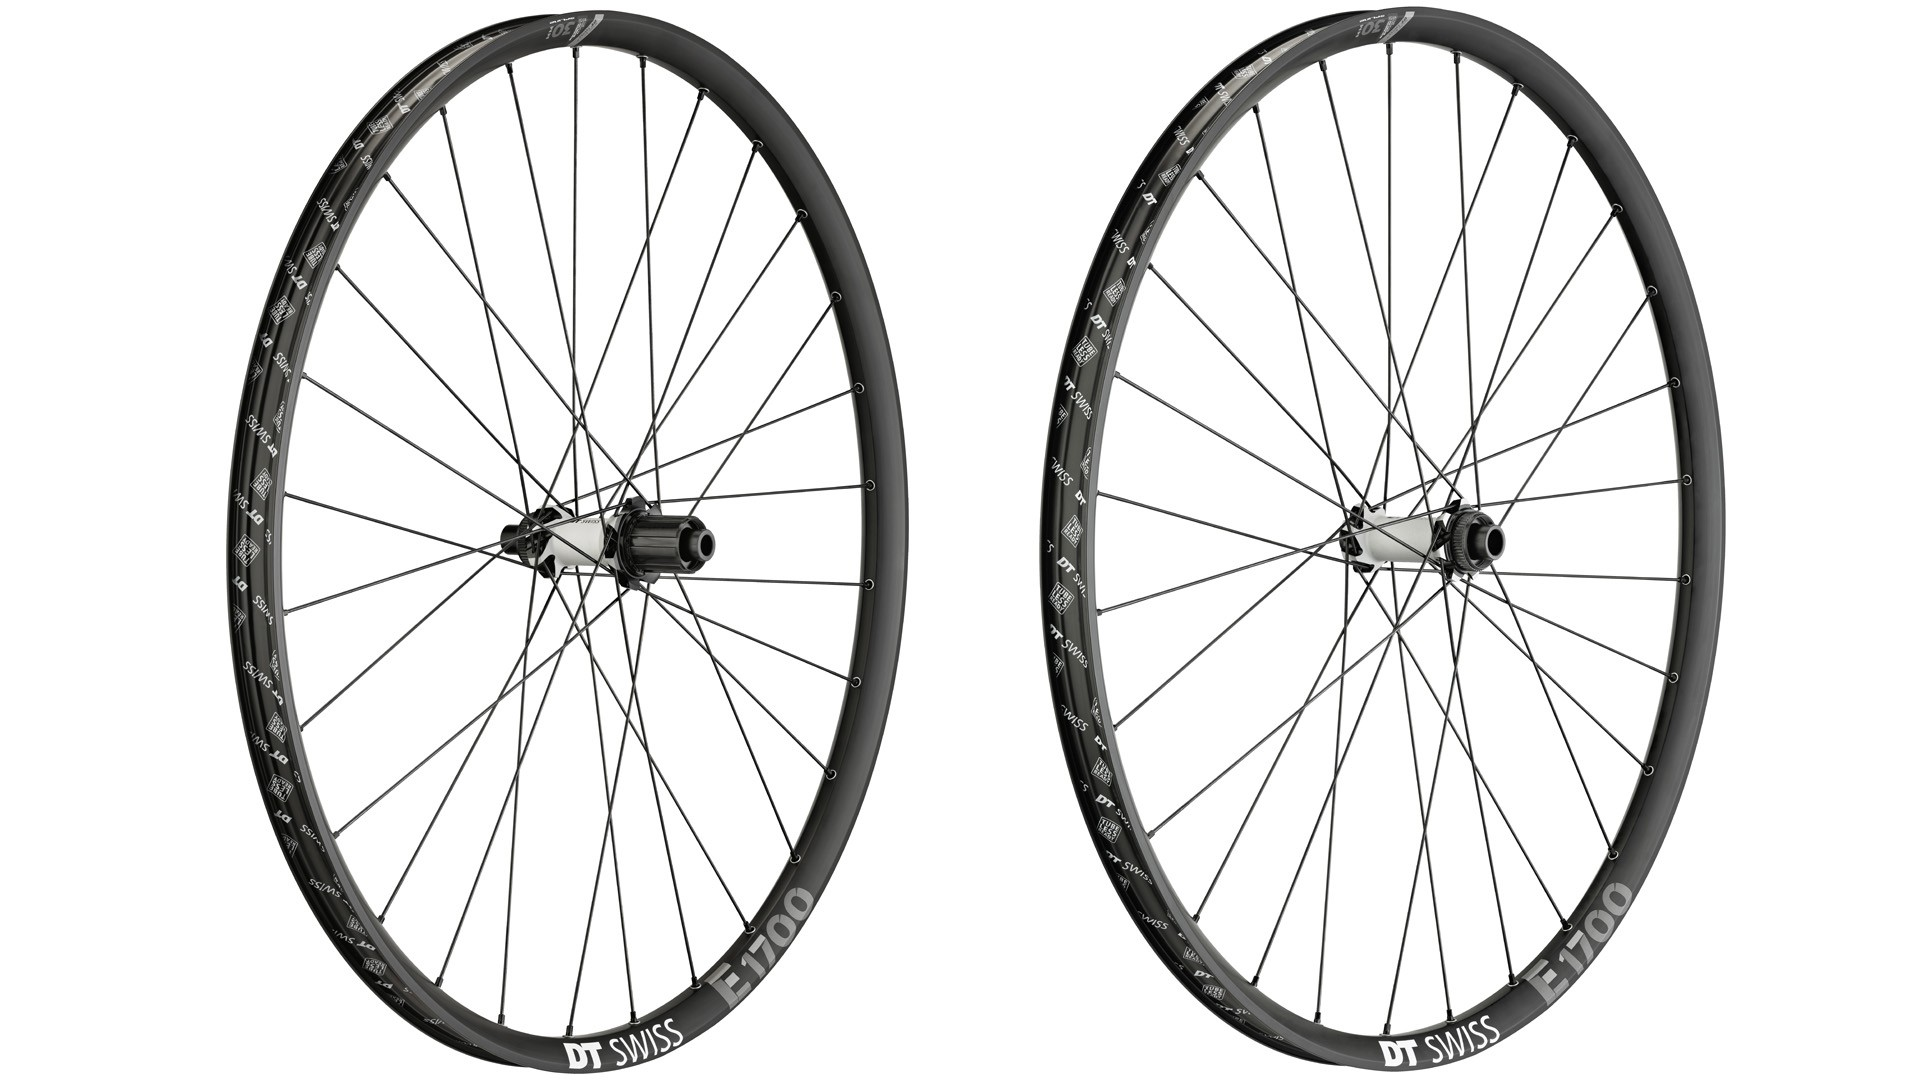 The E 1700 wheels, as tested on the Enduro World Series circuit